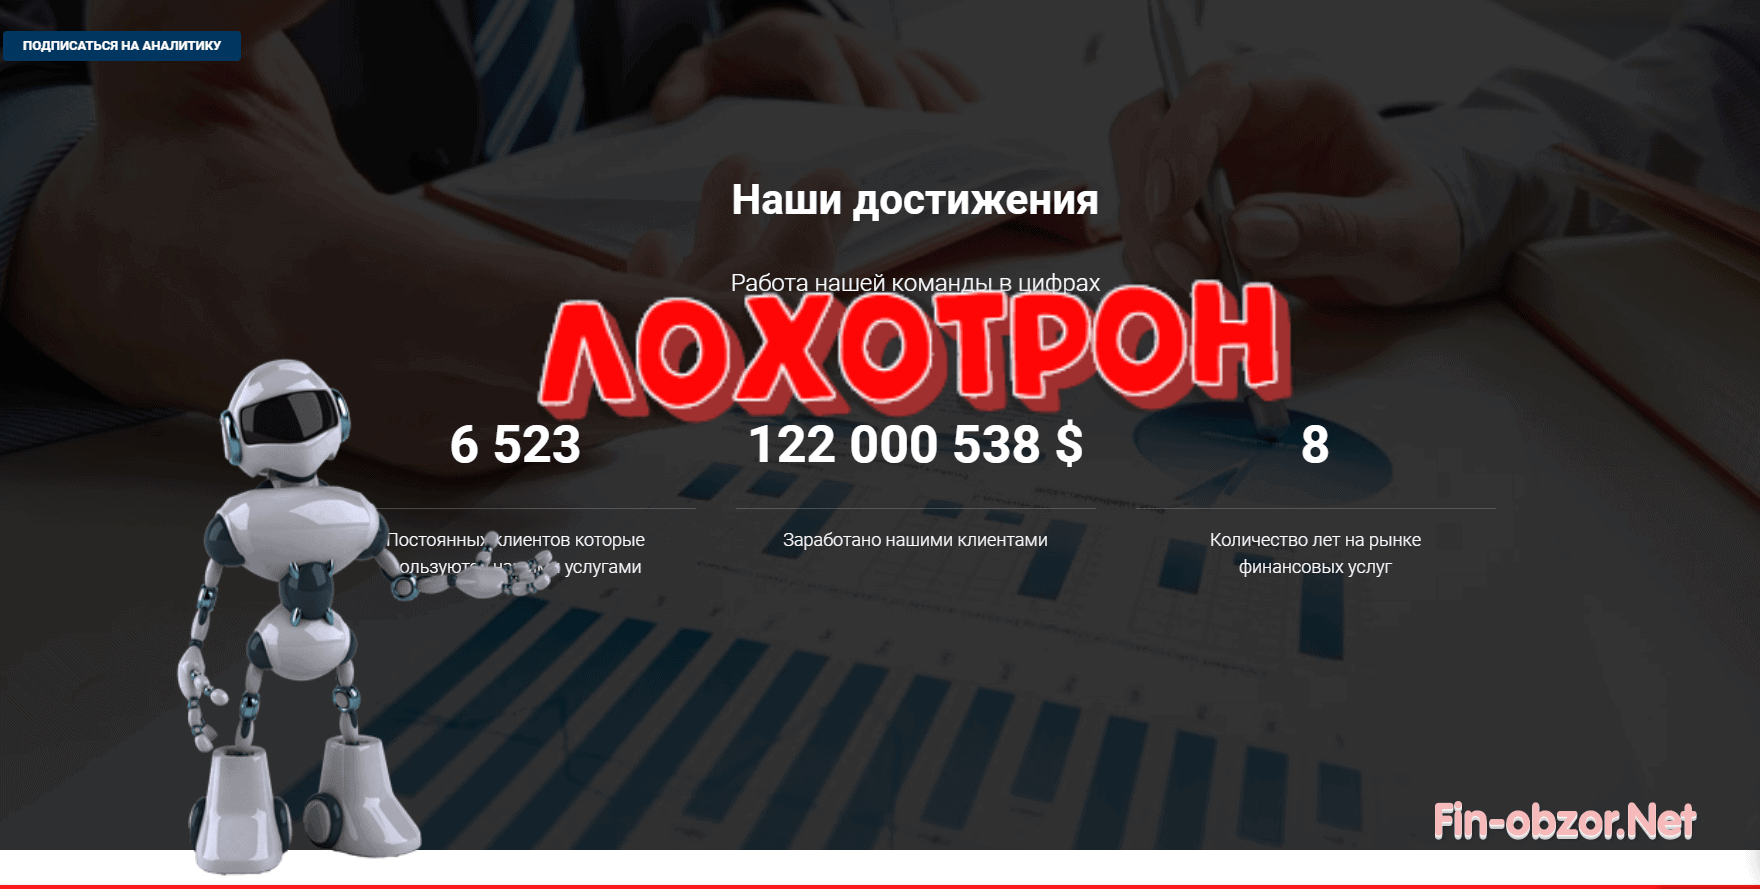 Financial Consulting Group мошенники?